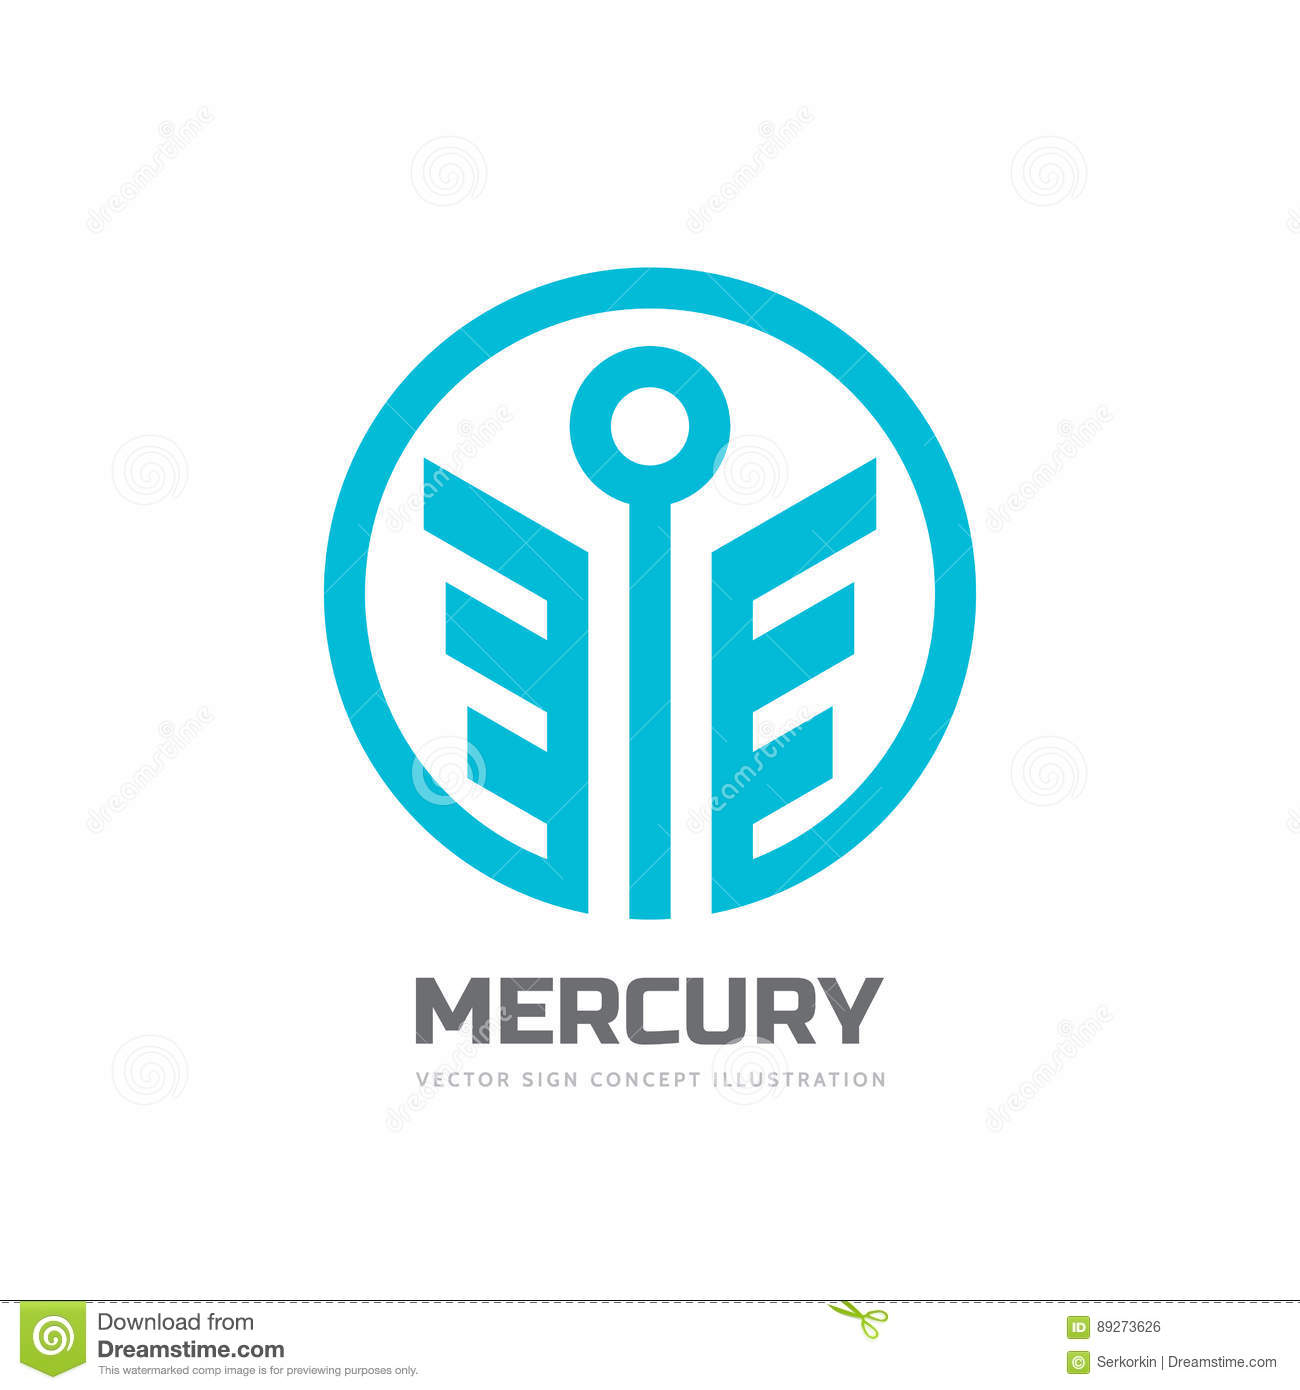 Mercury Vector Logo Template Concept Illustration Stylized God Of